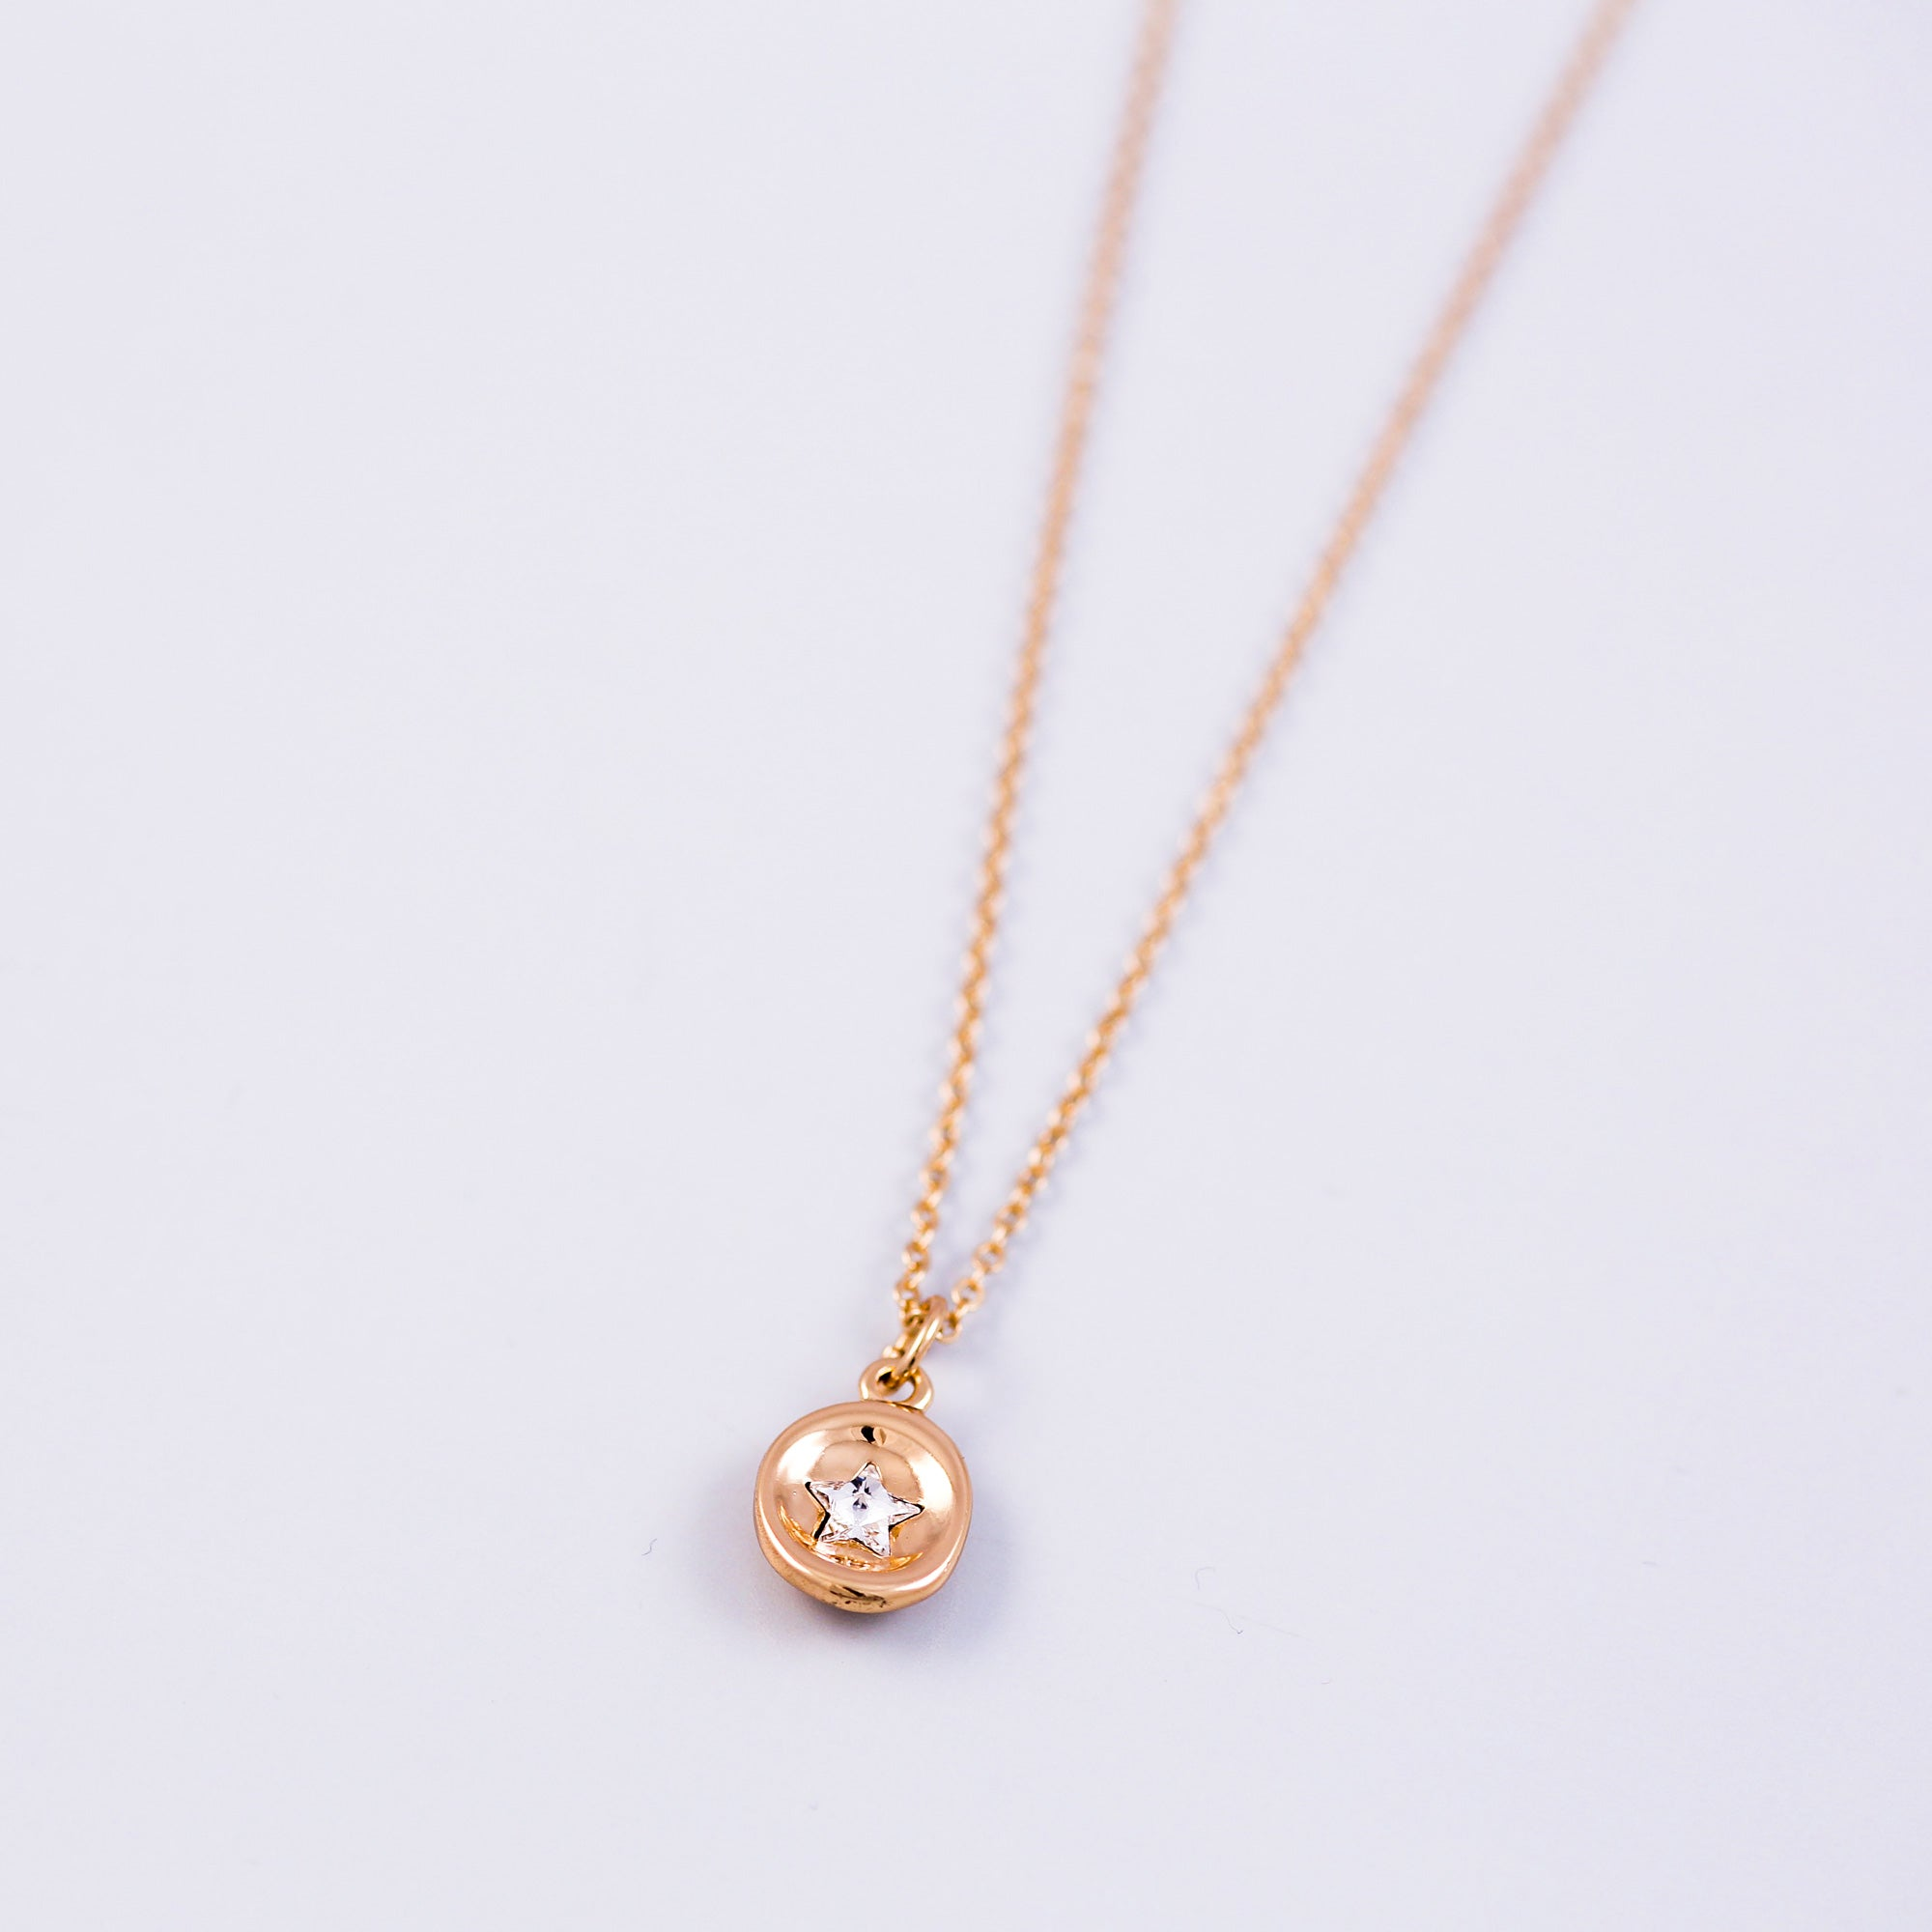 Gold Star Wax Seal Charm Necklace